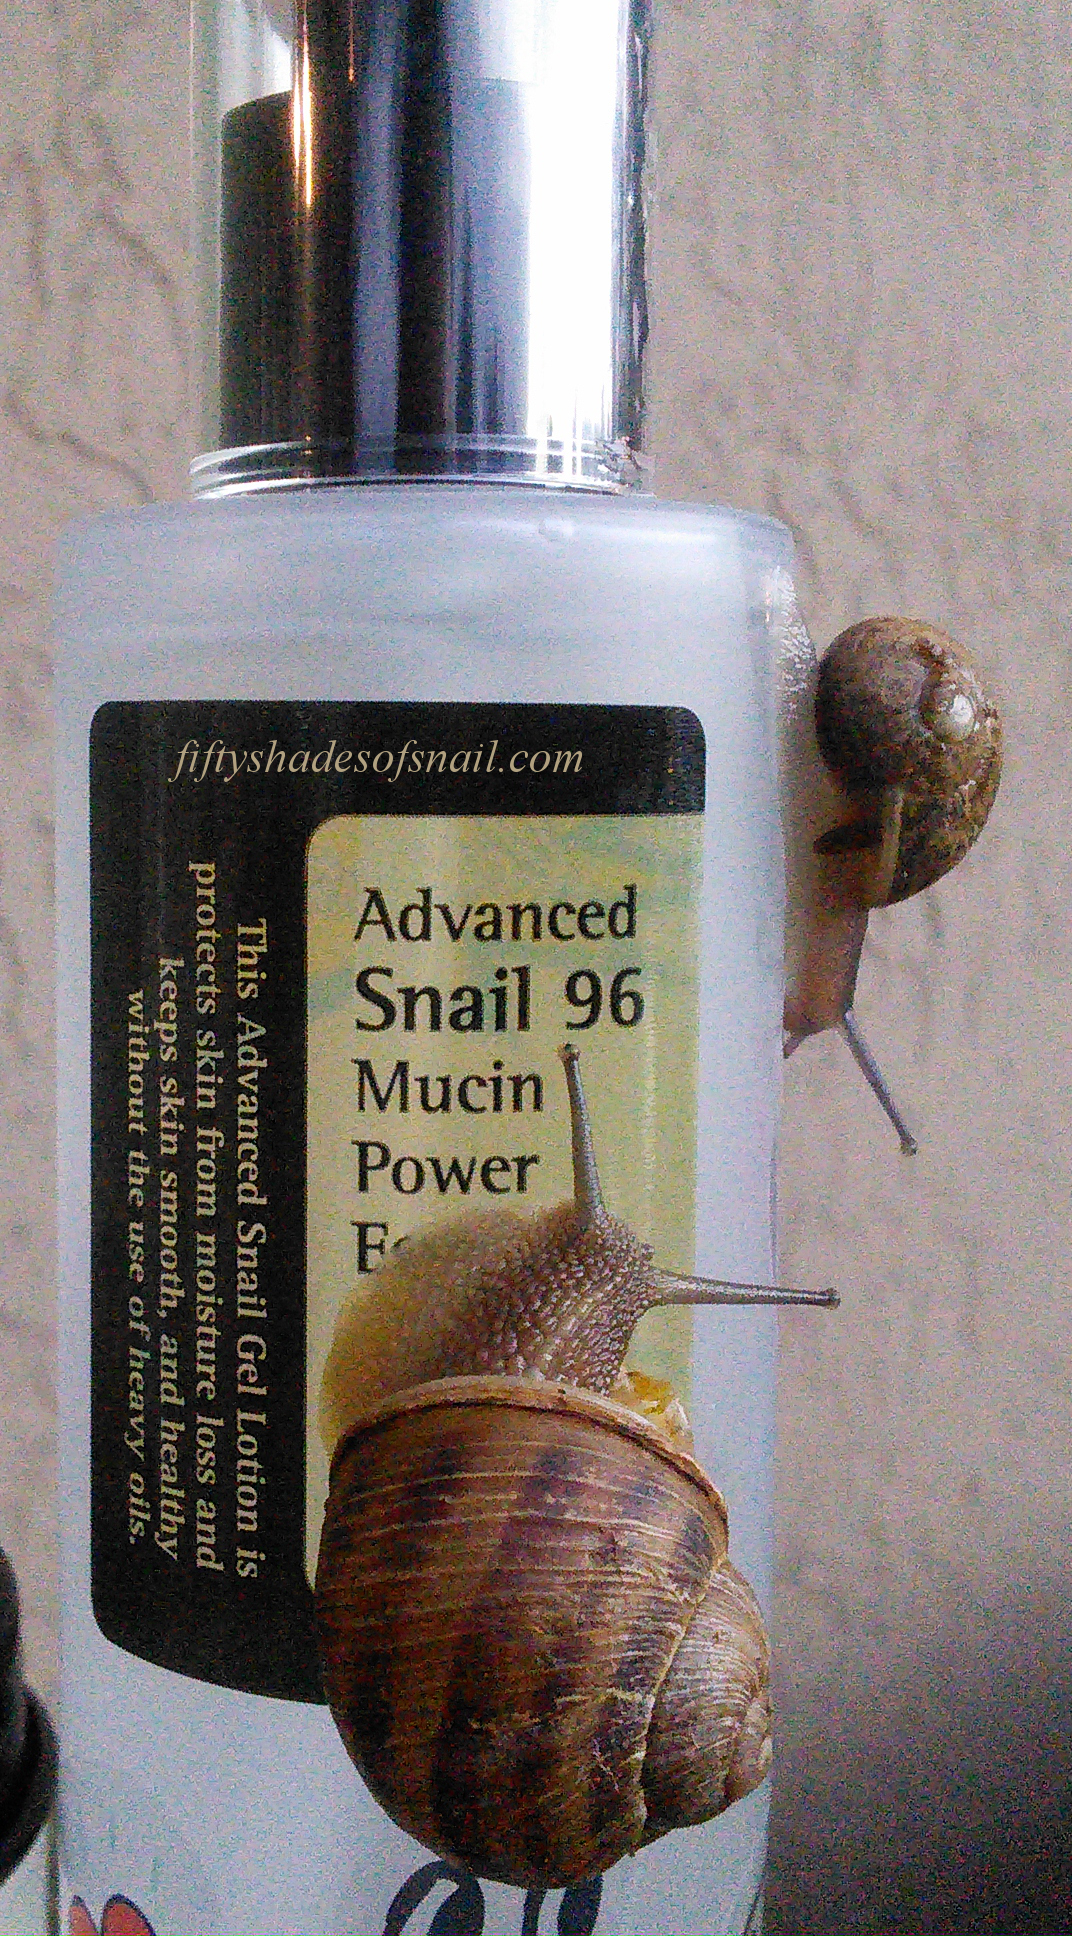 Cosrx Advanced Snail 96 Mucin Power Essence, 3.38 Oz Shiseido - Benefiance Firming Massage Mask -50ml/1.7oz